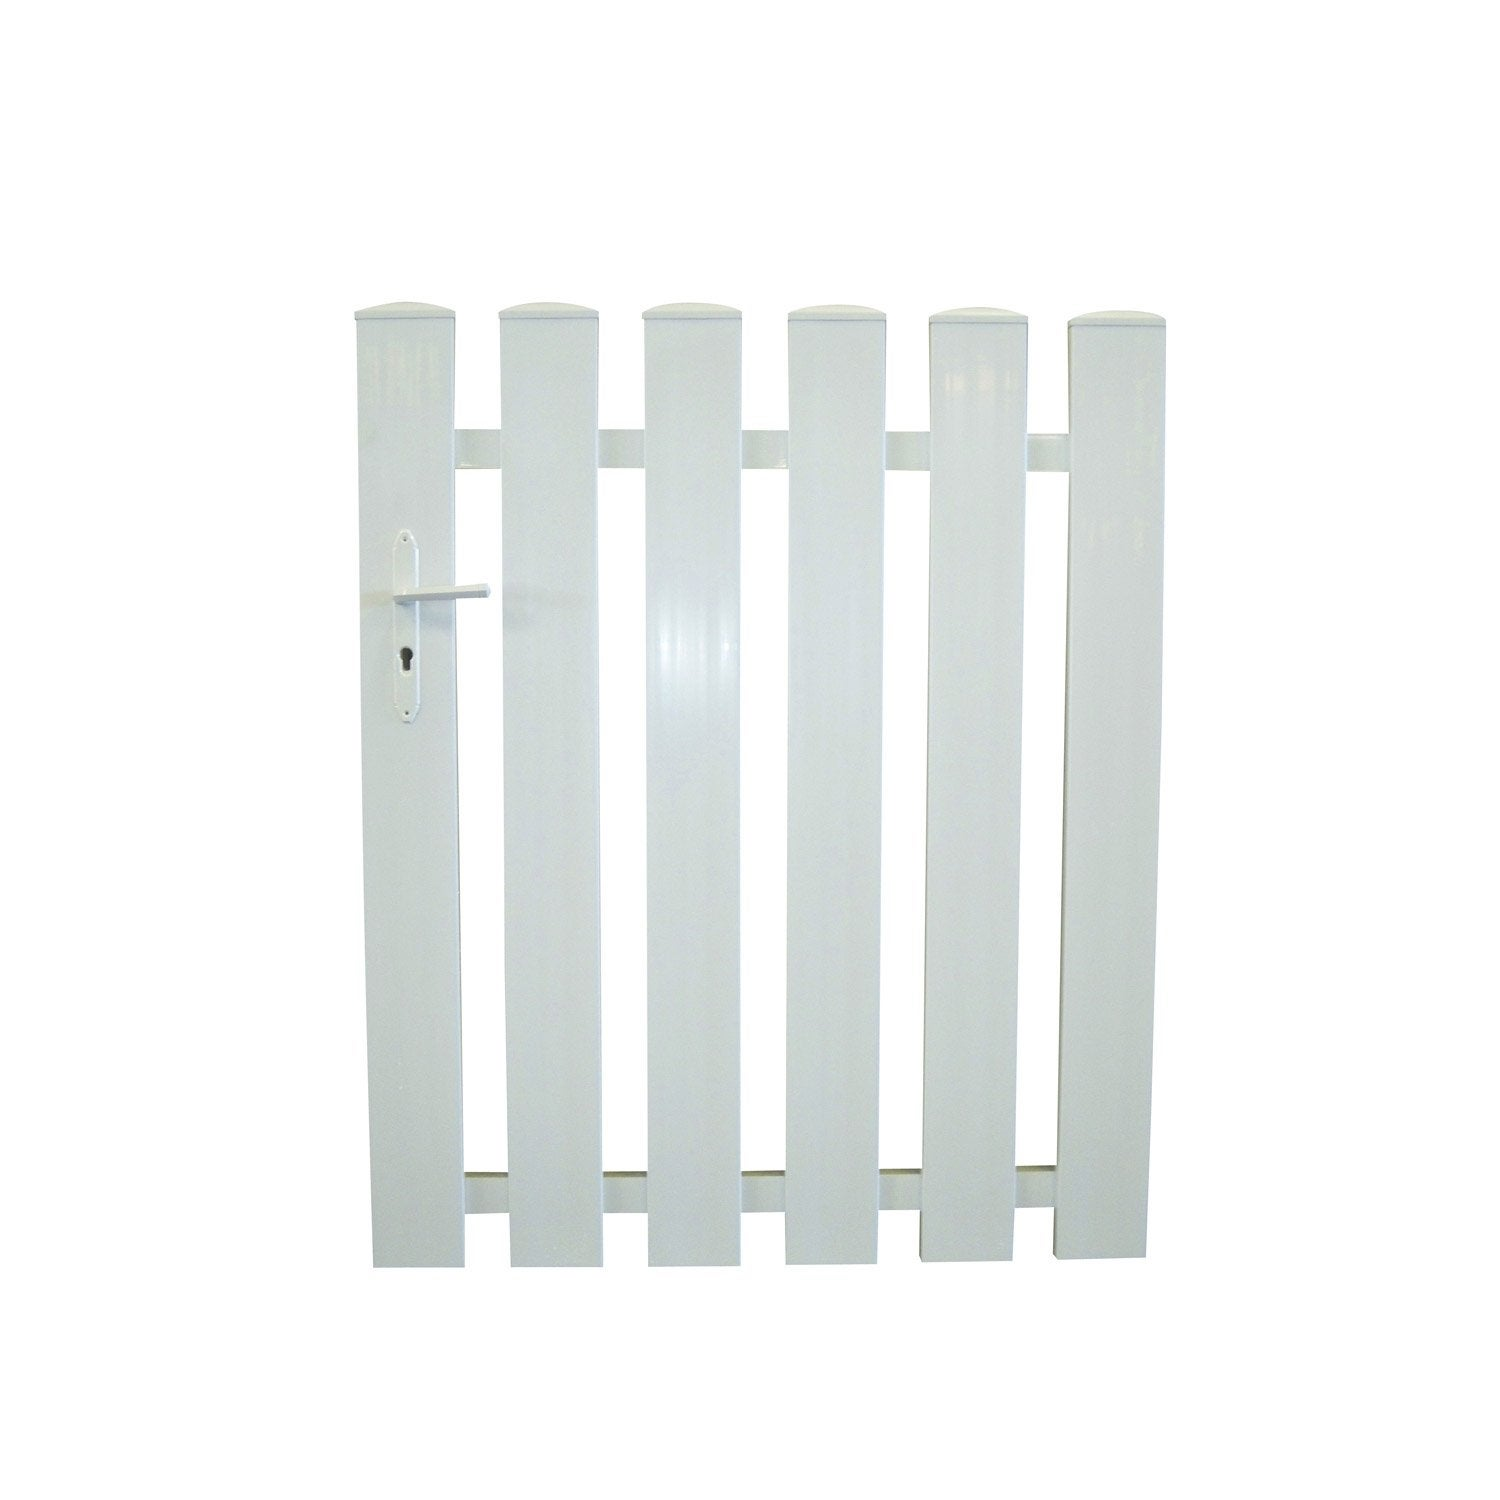 Portillon pvc blanc pas cher for Portillon pas cher pvc